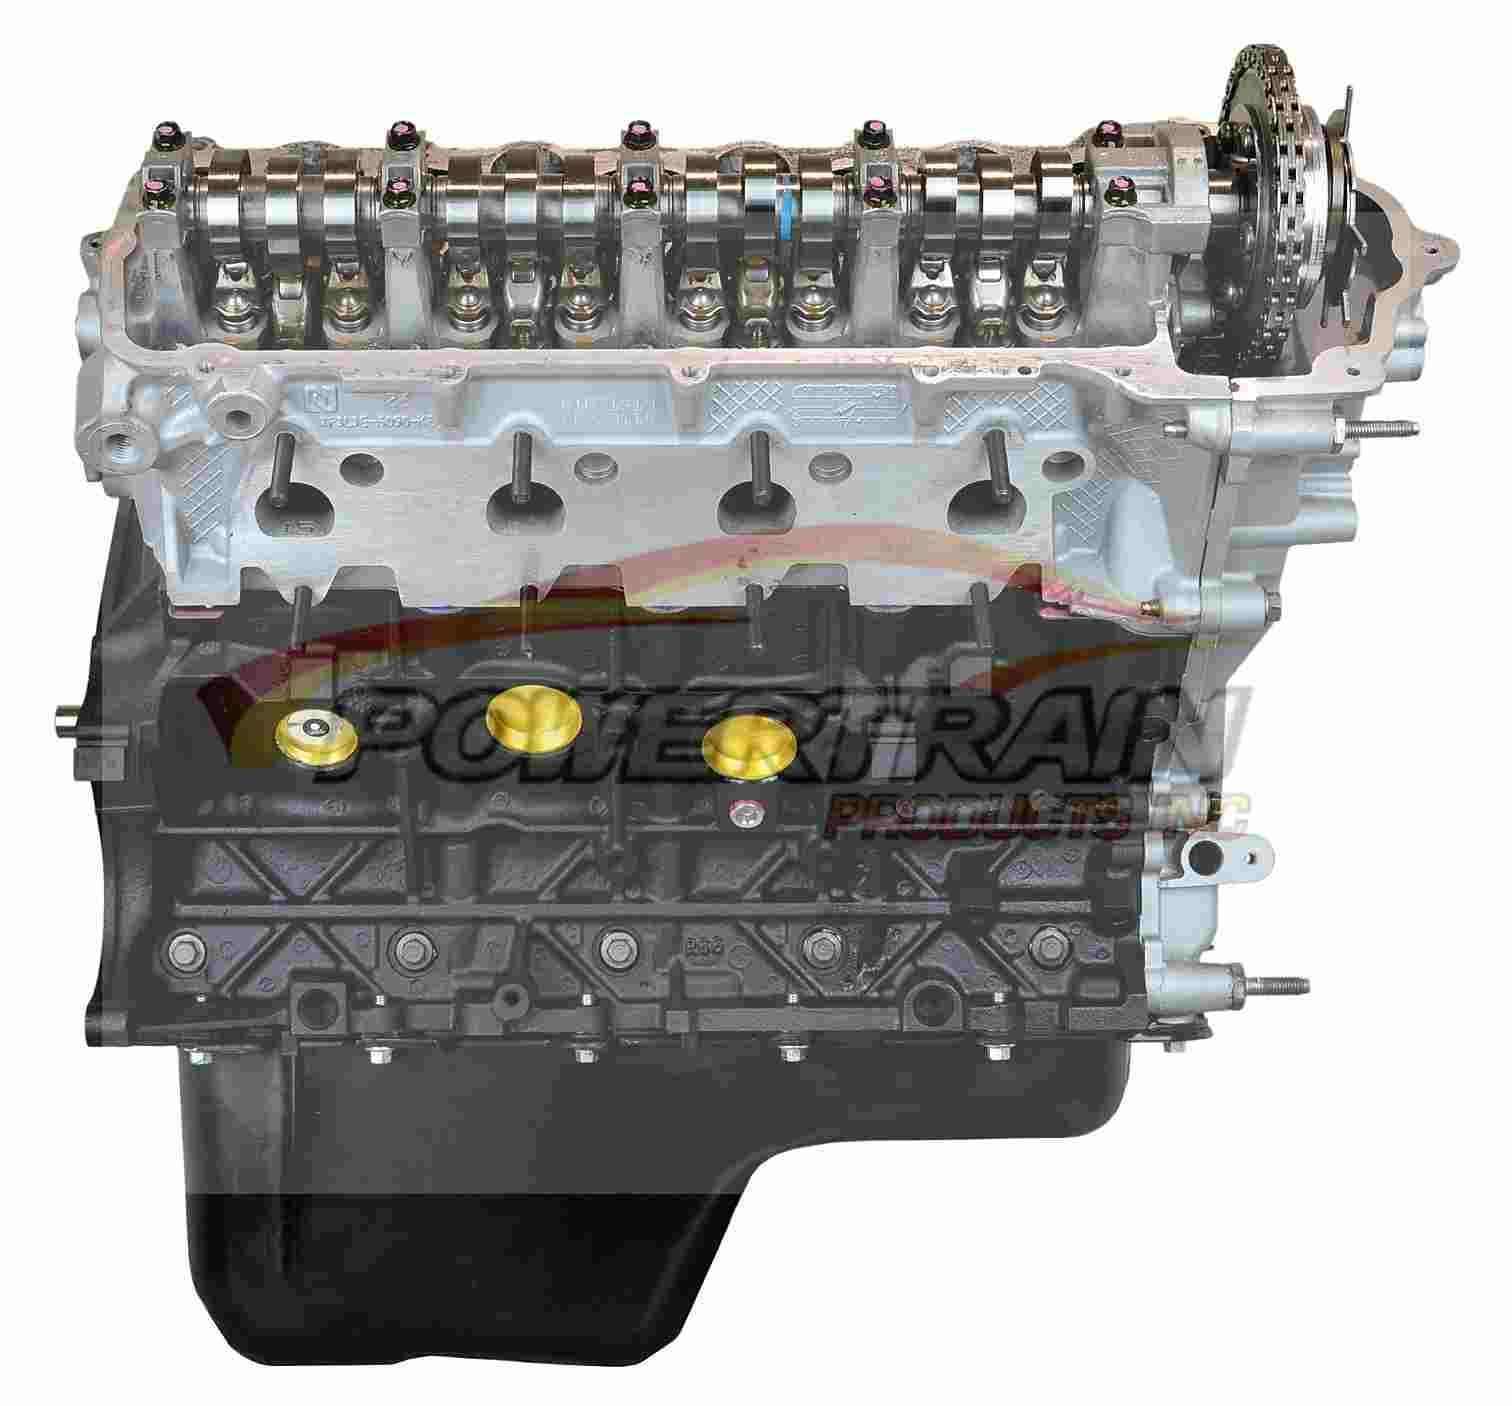 Ford 5 4 engine 2008 2012 f150 3 valve vin 5 expedition